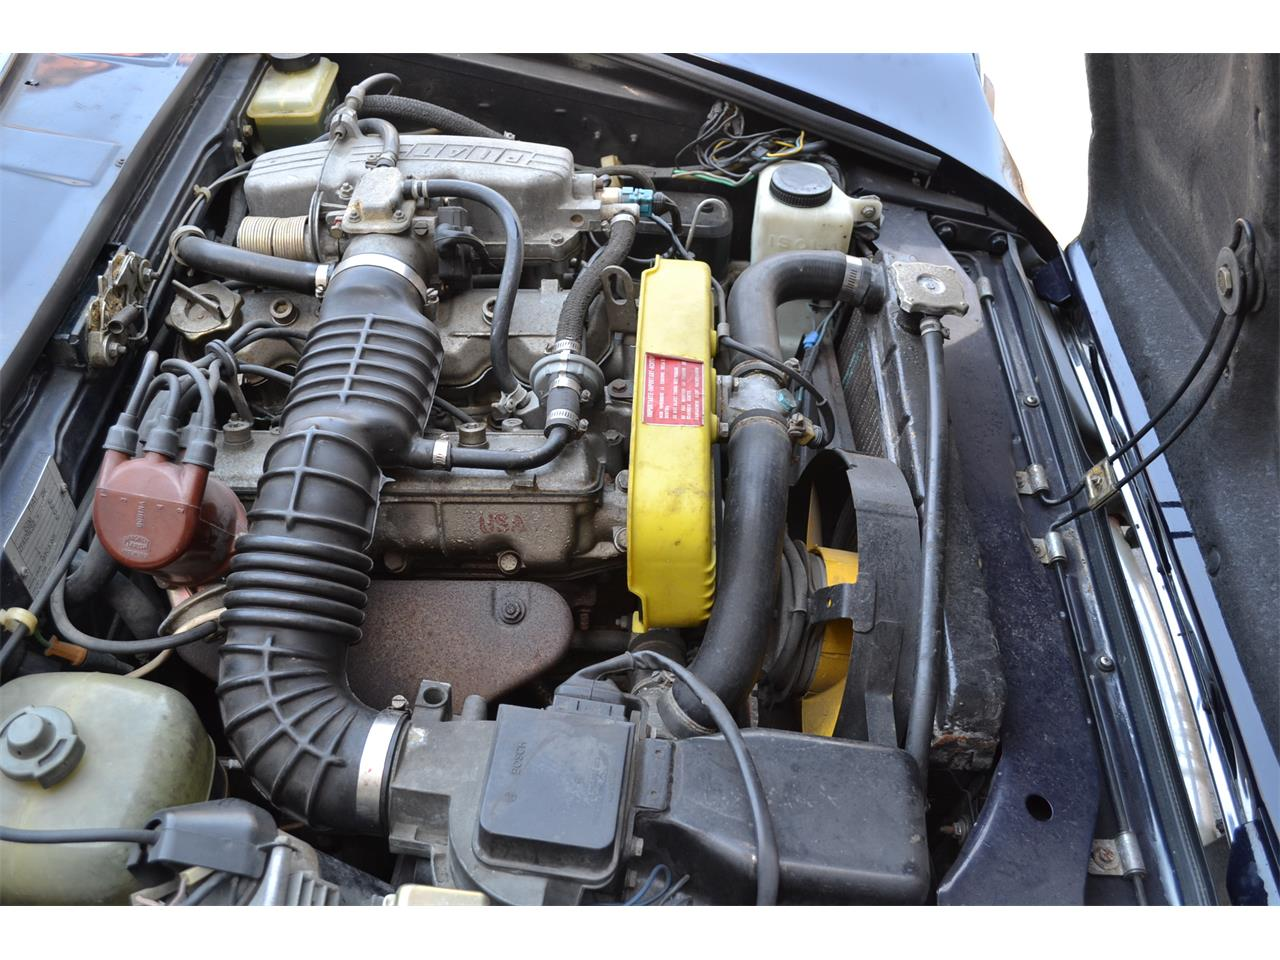 1981 Fiat Spider for sale in Barrington, IL – photo 11